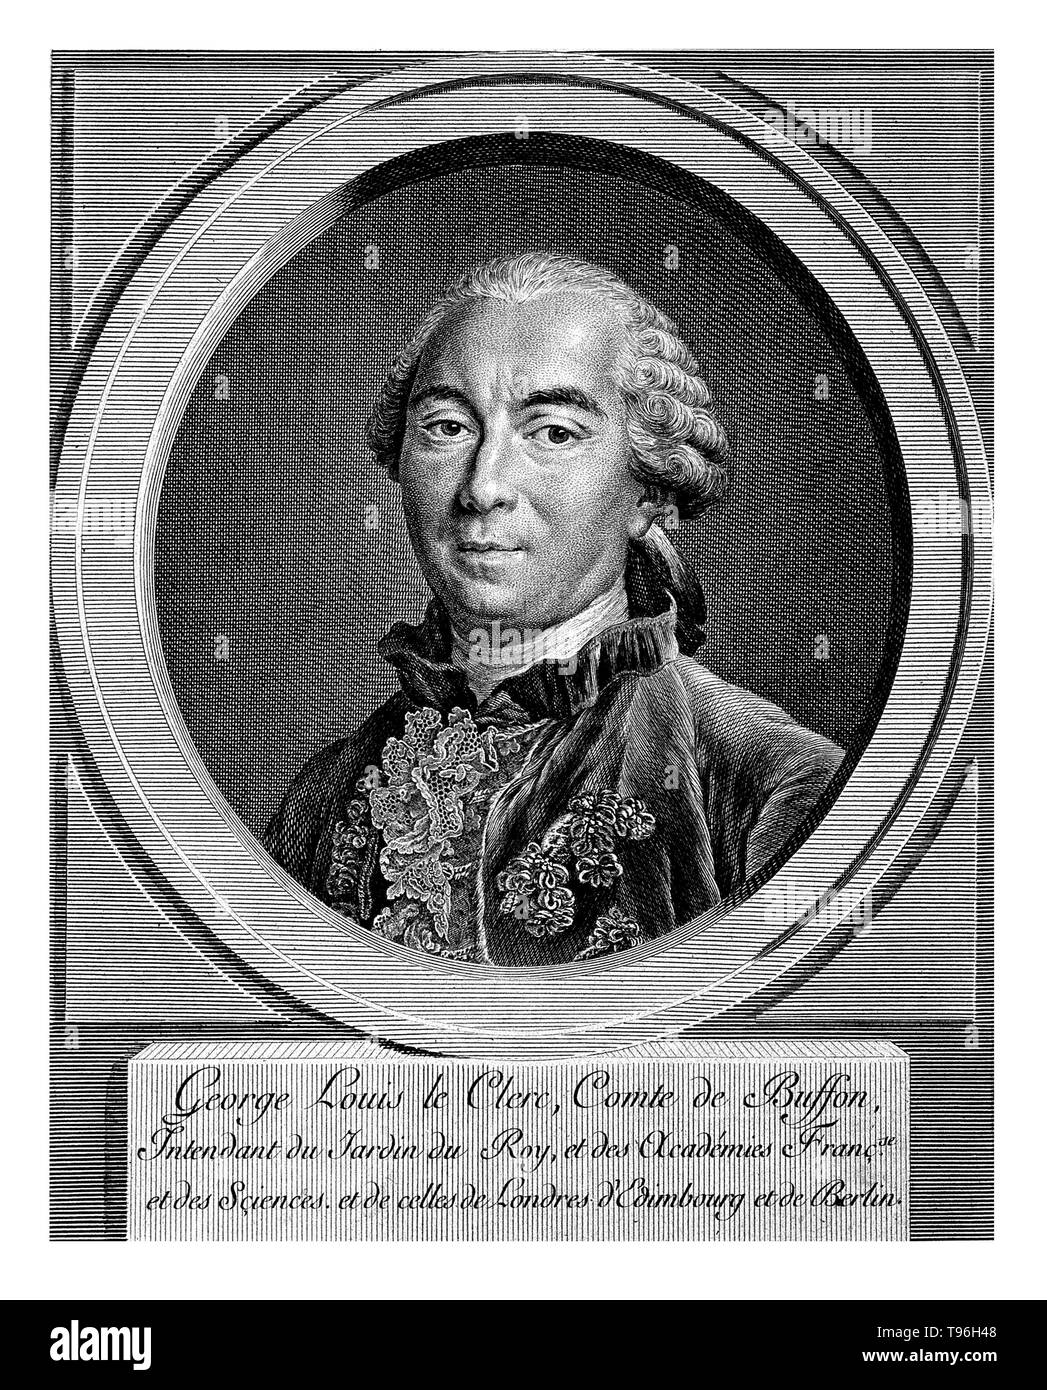 Georges Louis Leclerc, Comte de Buffon (September 7, 1707 - April 16, 1788) was a French naturalist, mathematician, cosmologist, and encyclopedic author. He epitomizes the revolutionary changes that the Enlightenment brought to the study of nature. Stock Photo